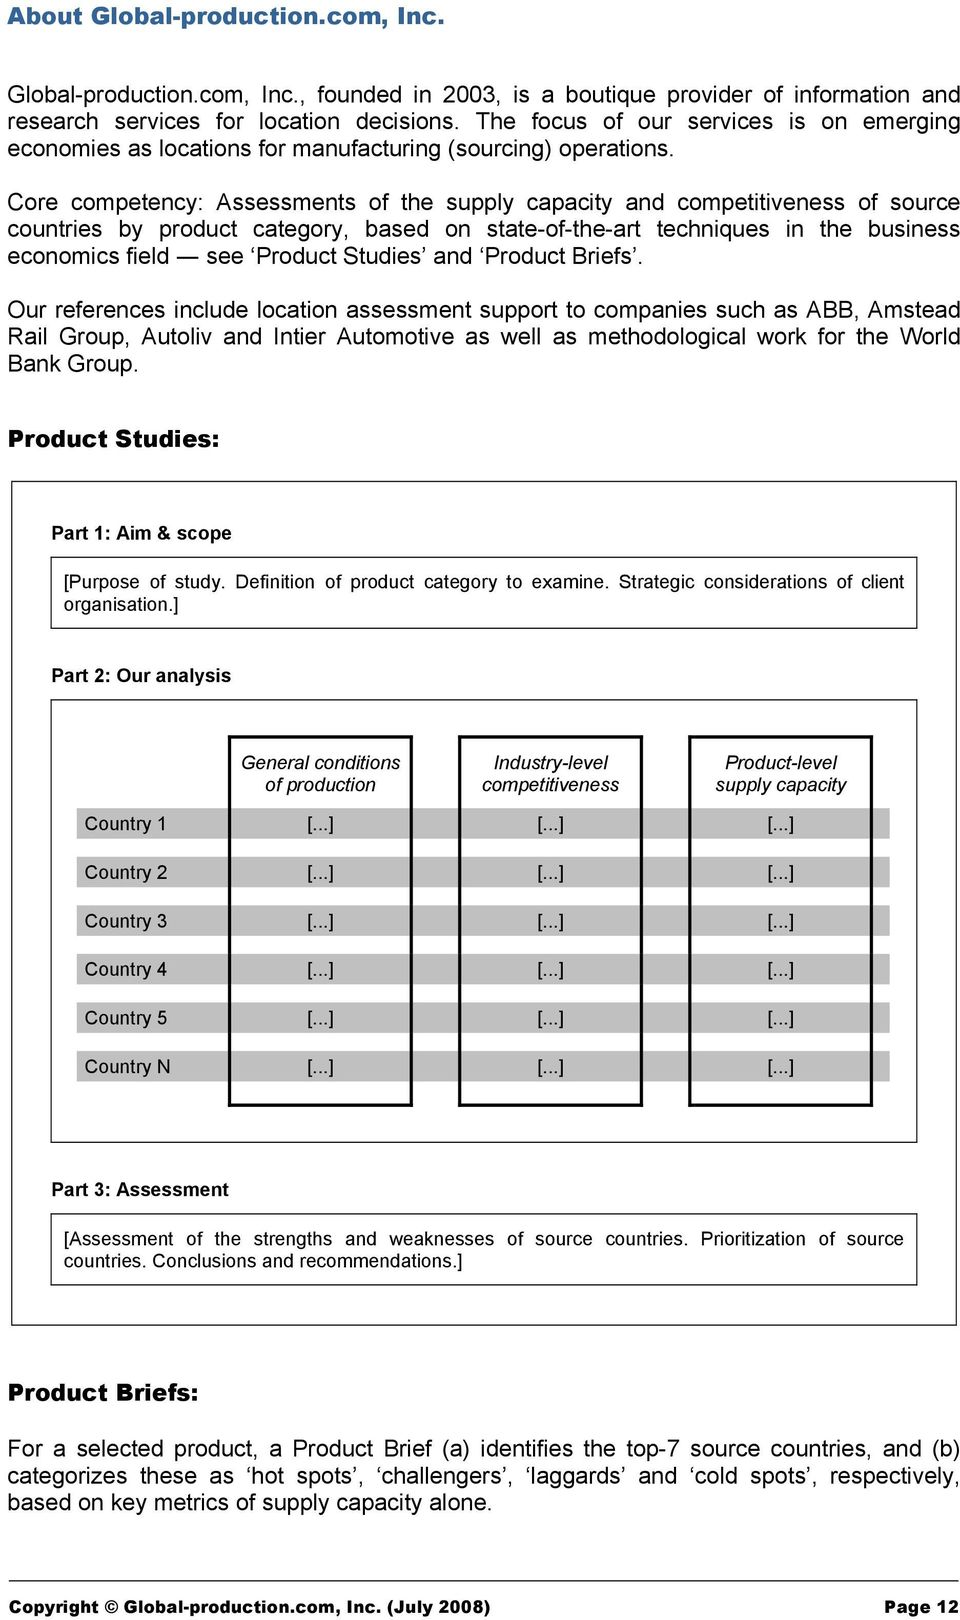 Core competency: Assessments of the supply capacity and competitiveness of source countries by product category, based on state-of-the-art techniques in the business economics field see Product